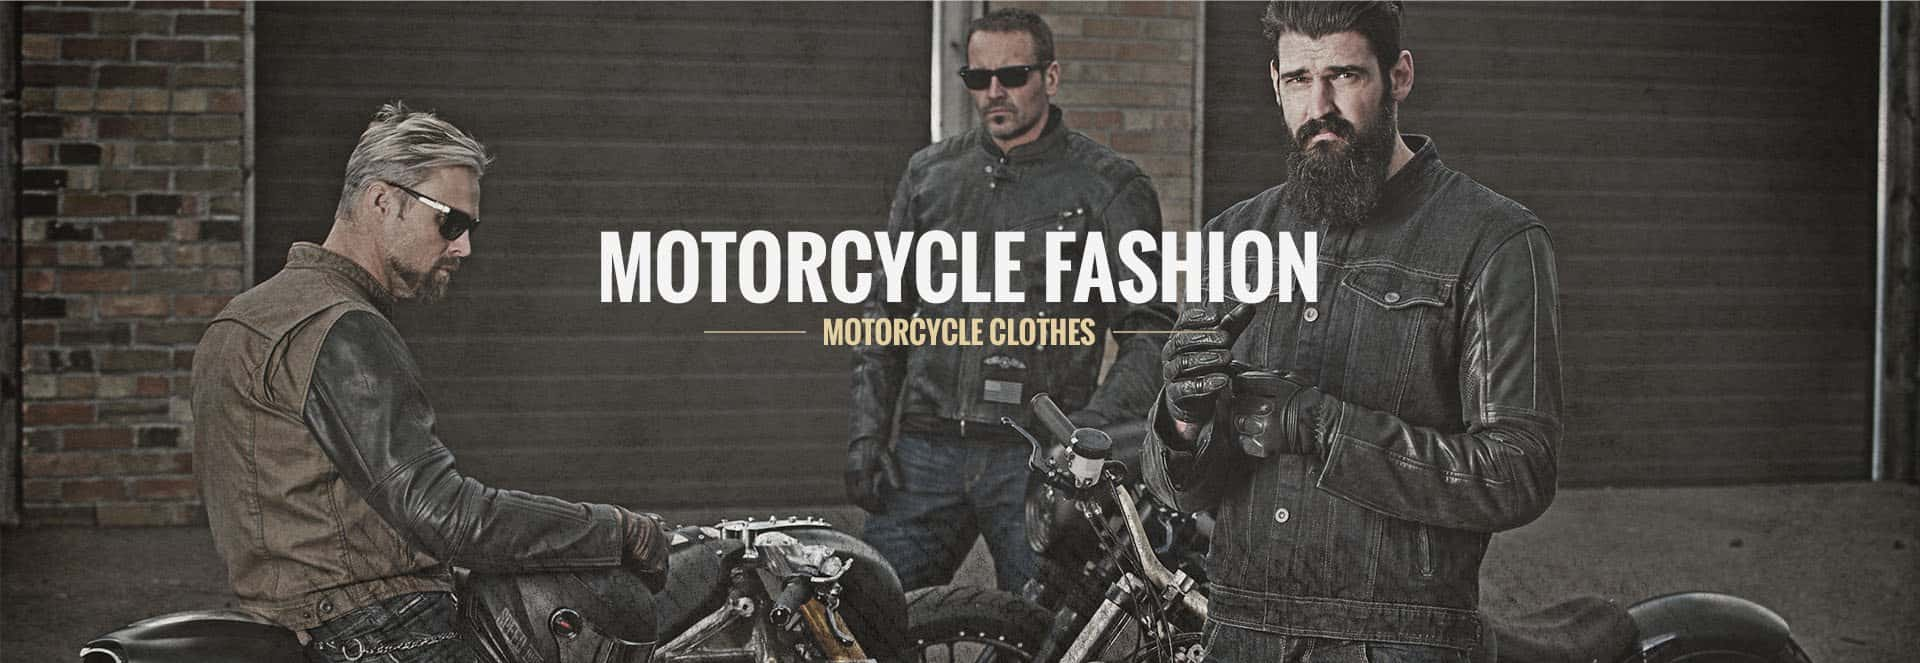 Motorcycle fashion and clothes